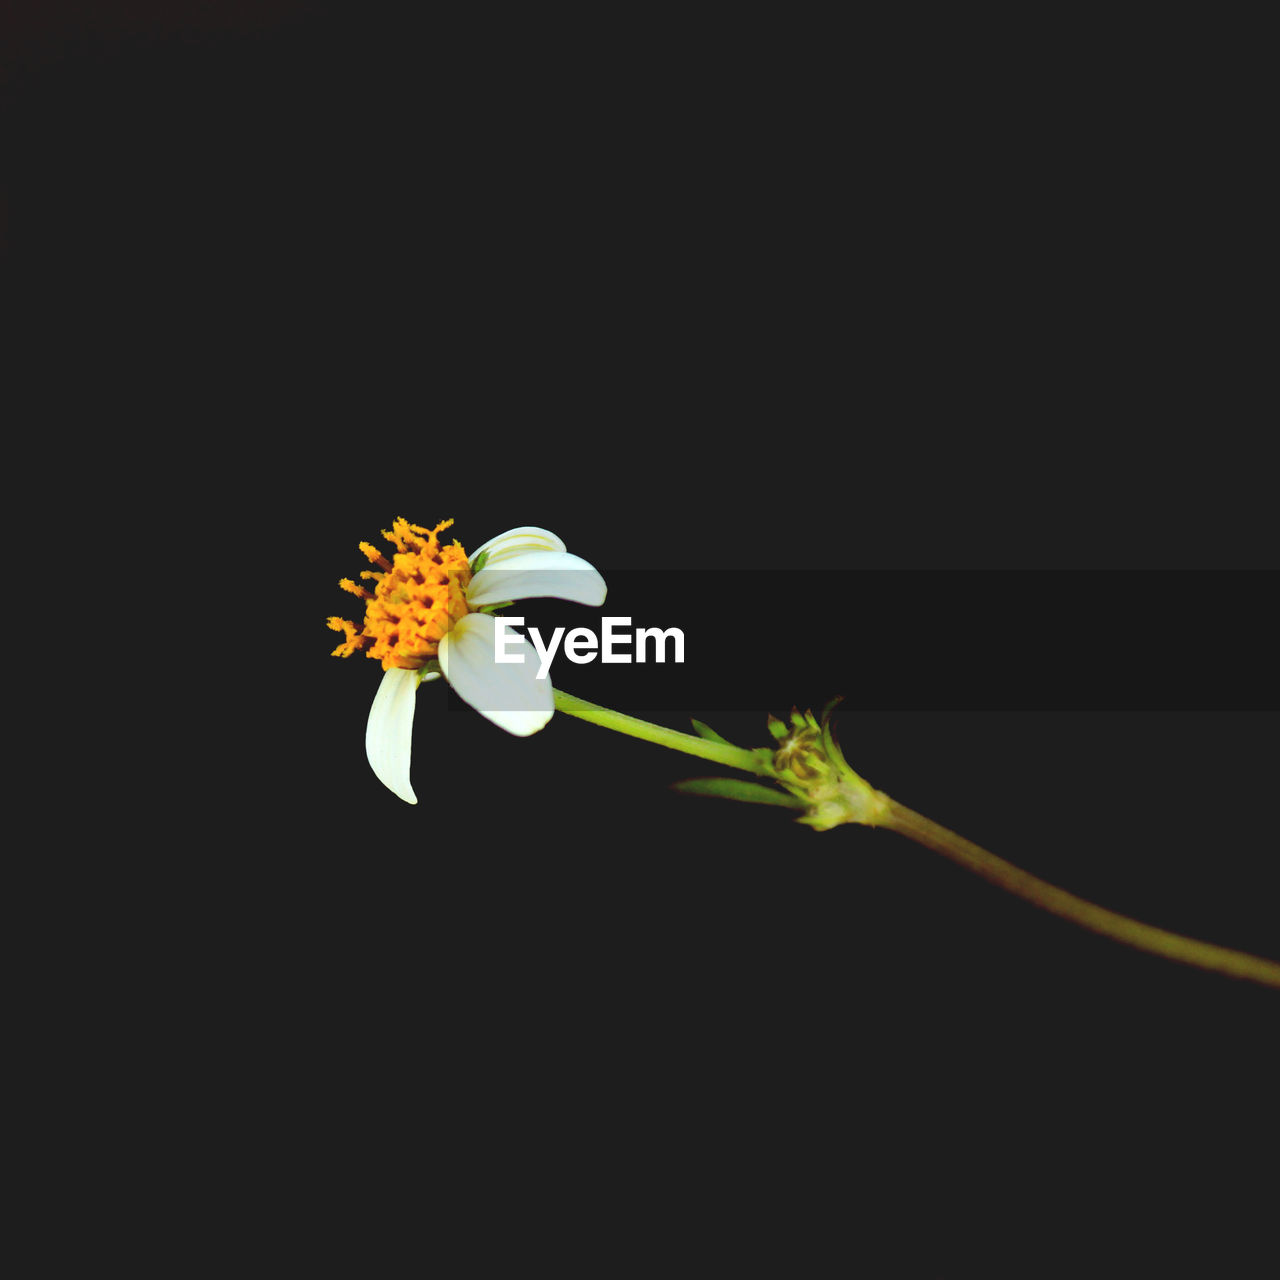 flowering plant, flower, vulnerability, fragility, petal, beauty in nature, plant, freshness, growth, flower head, inflorescence, close-up, studio shot, copy space, nature, no people, black background, pollen, yellow, night, outdoors